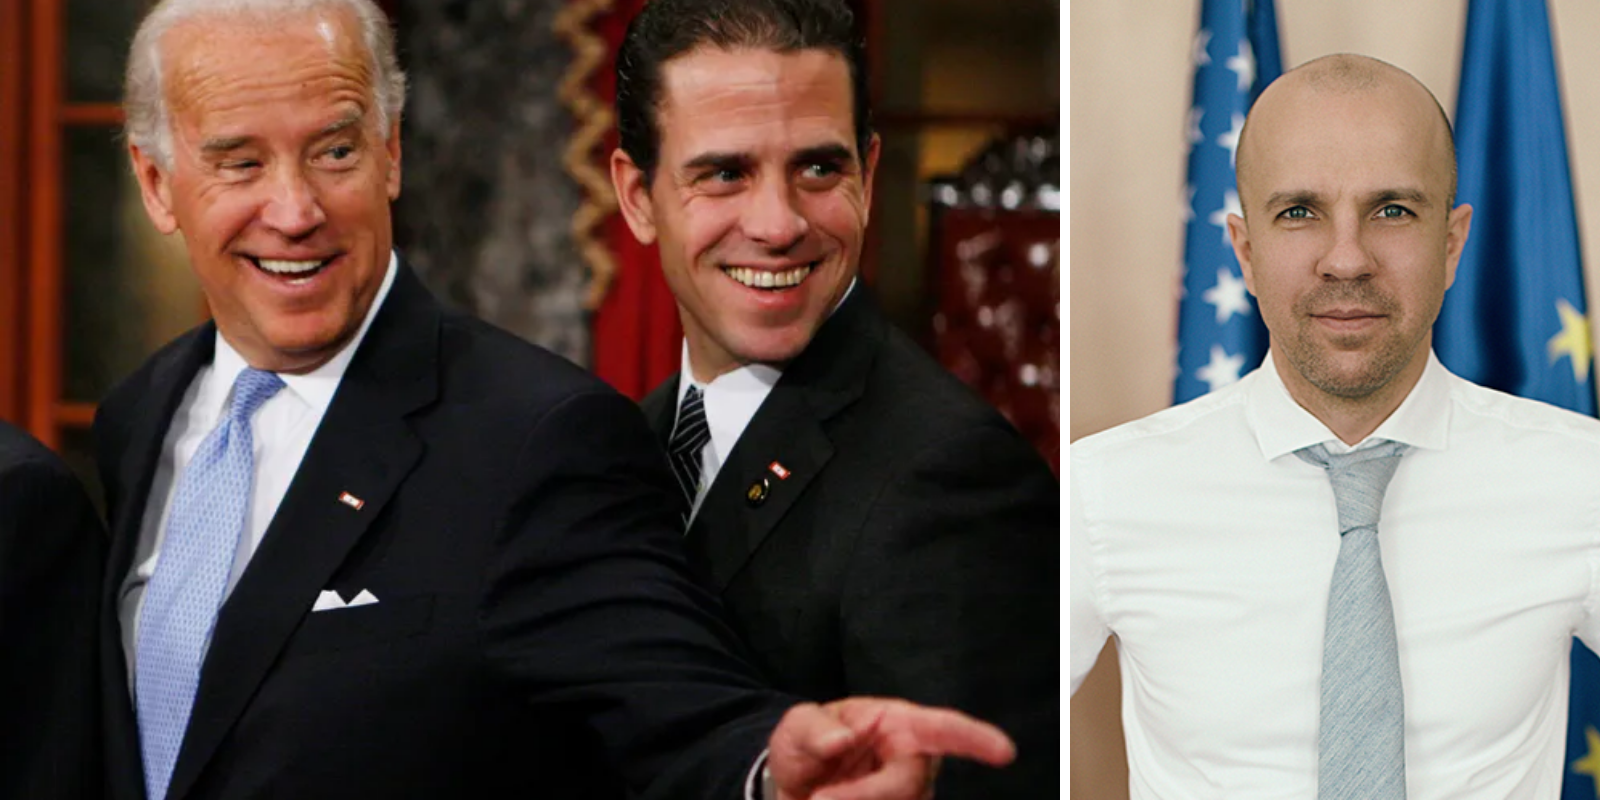 Cybersecurity analysis reveals NY Post's 'Smoking Gun' Hunter Biden emails are authentic